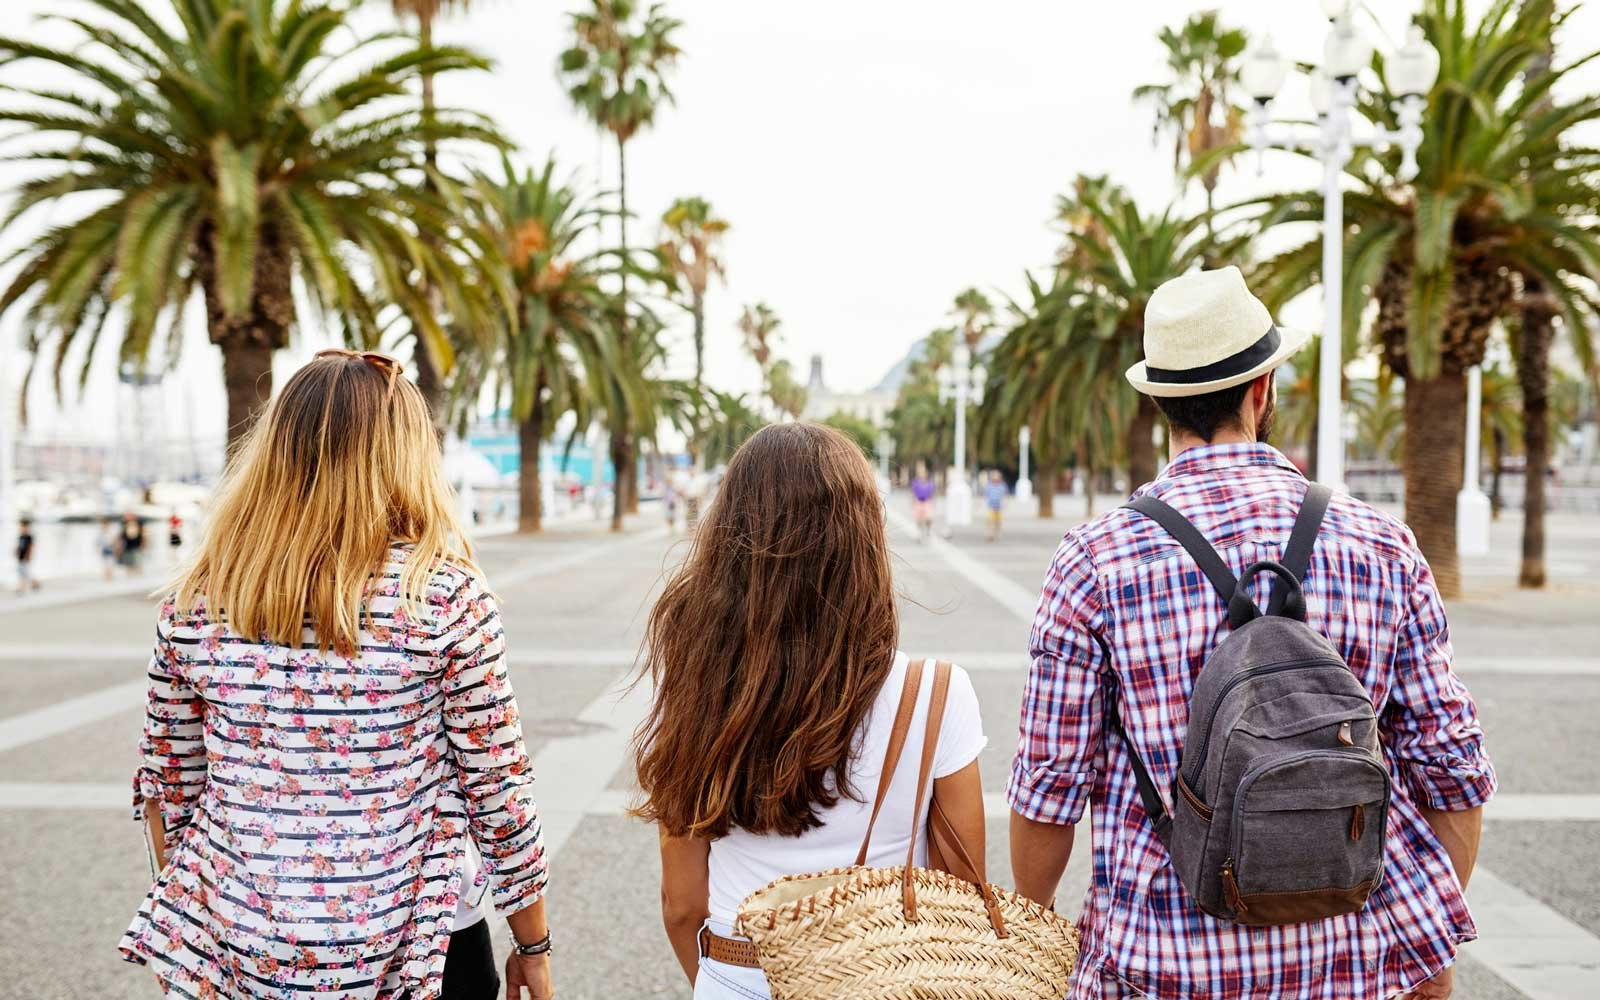 Spain, Barcelona, back view of three tourists in the city